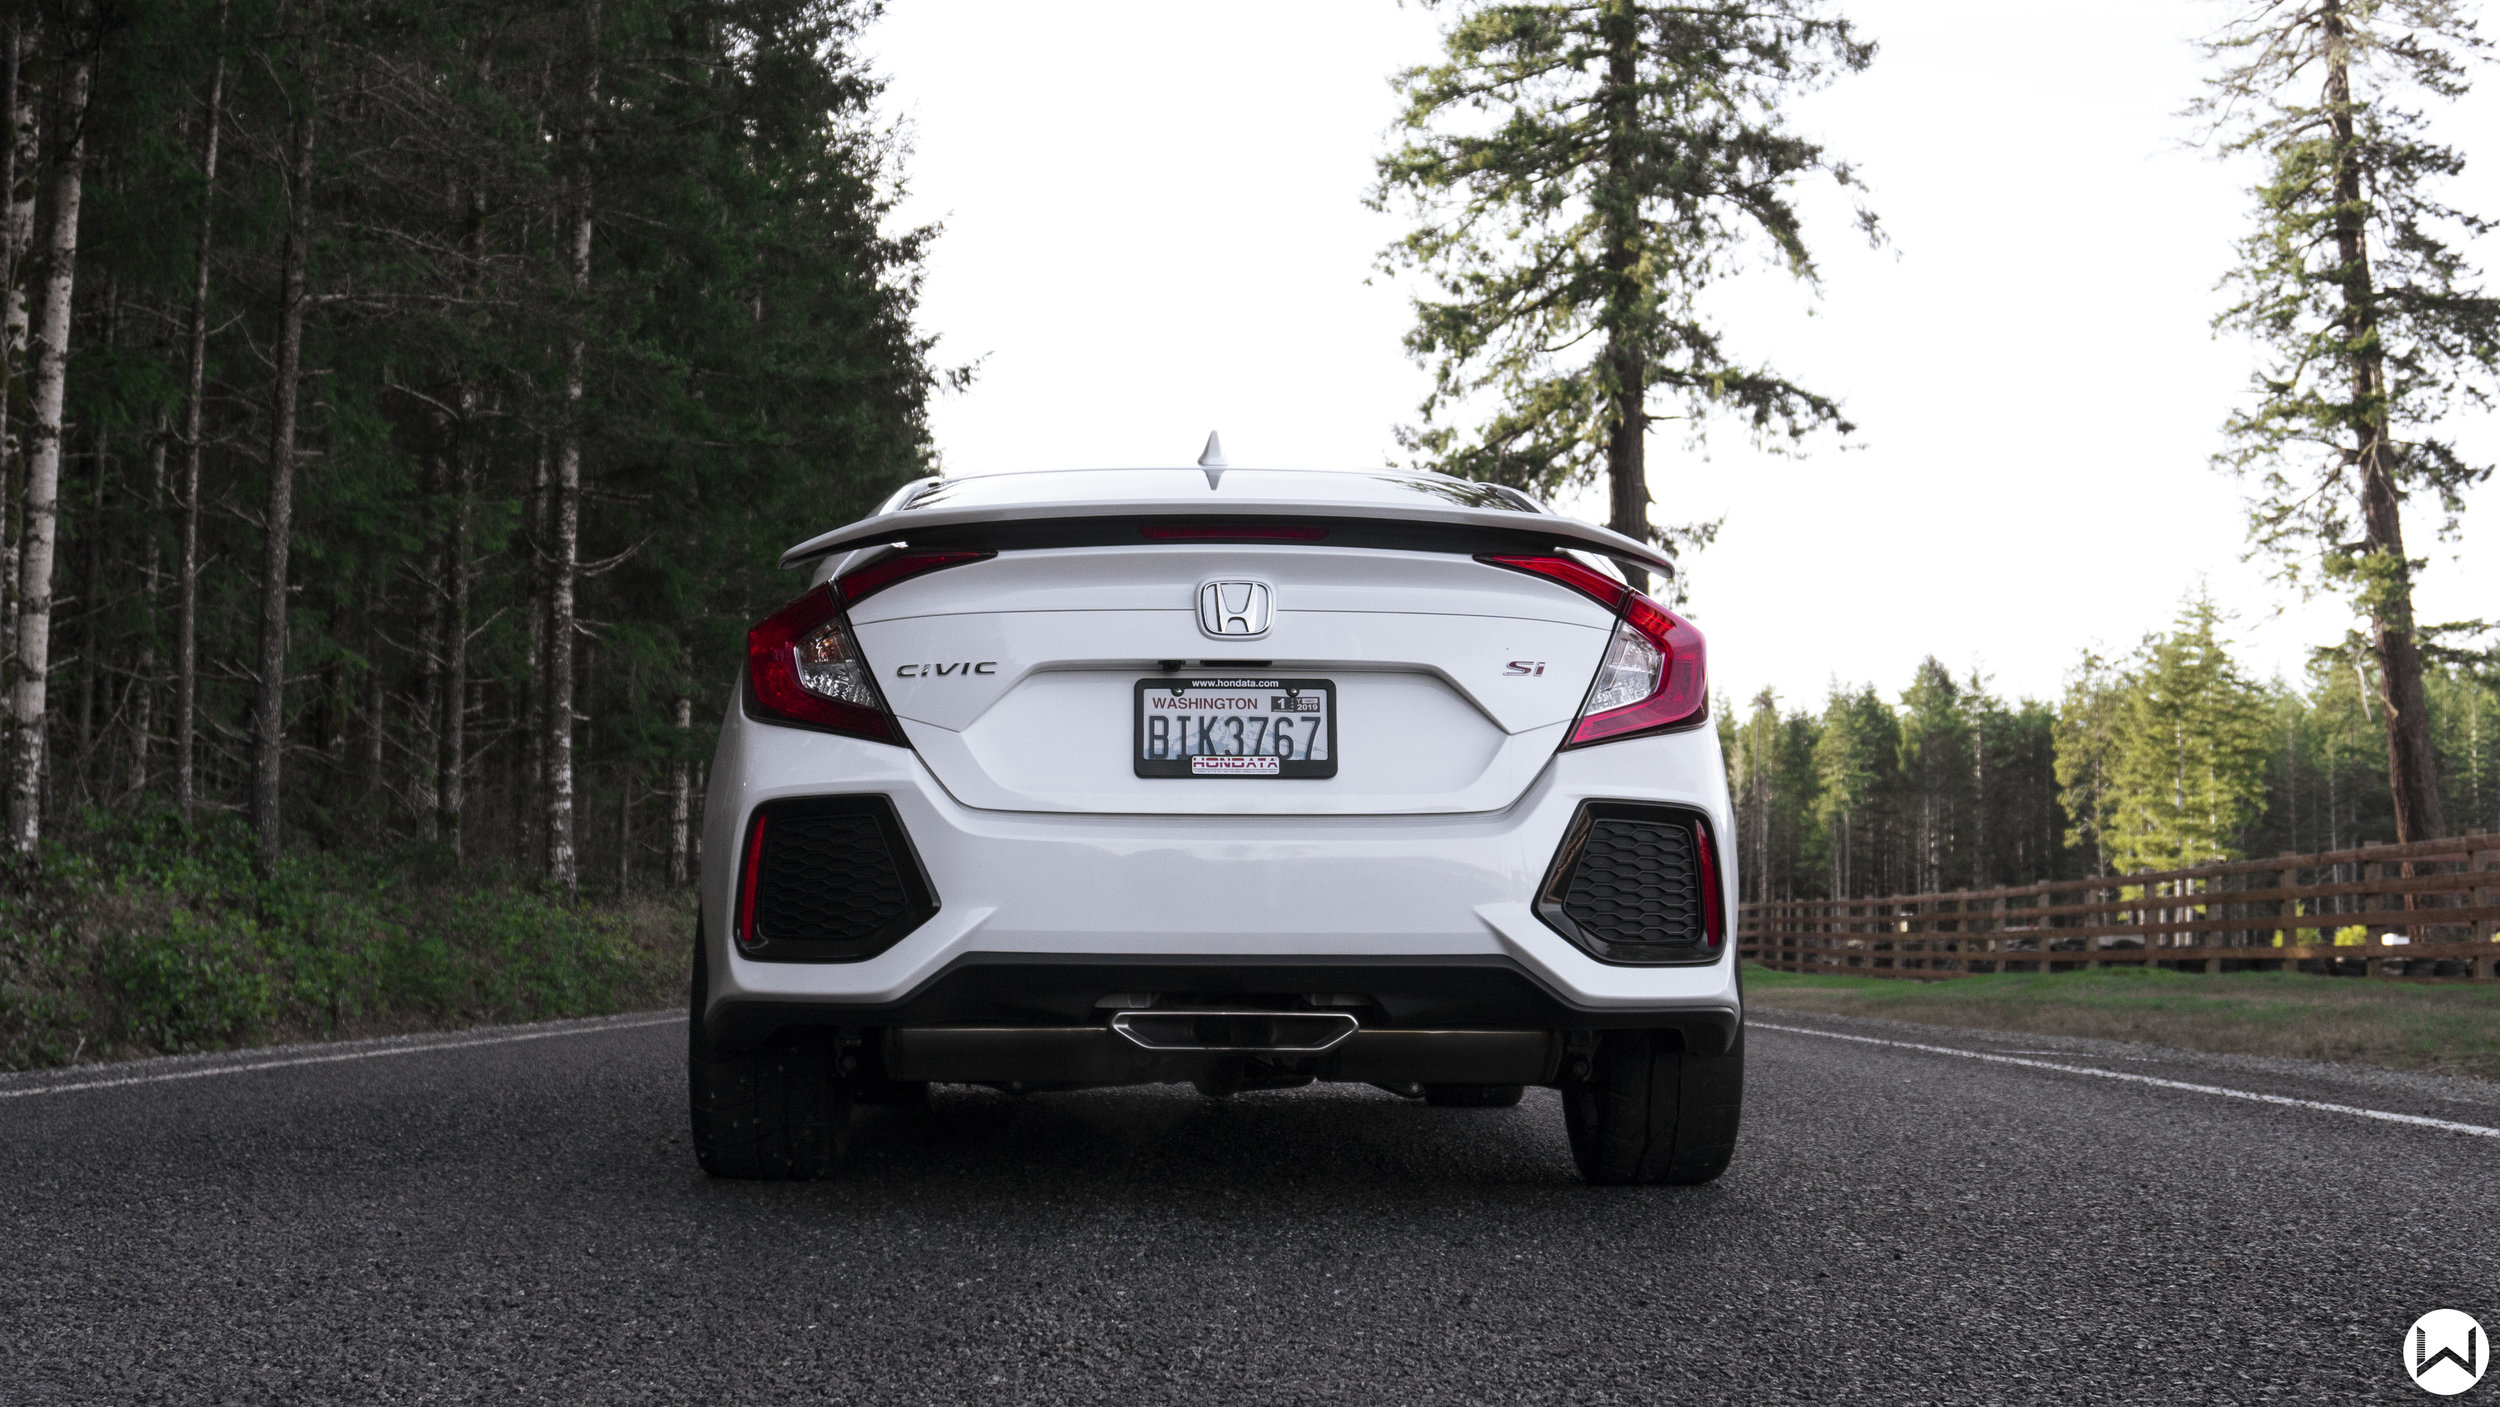 Rear End, On Road.jpg